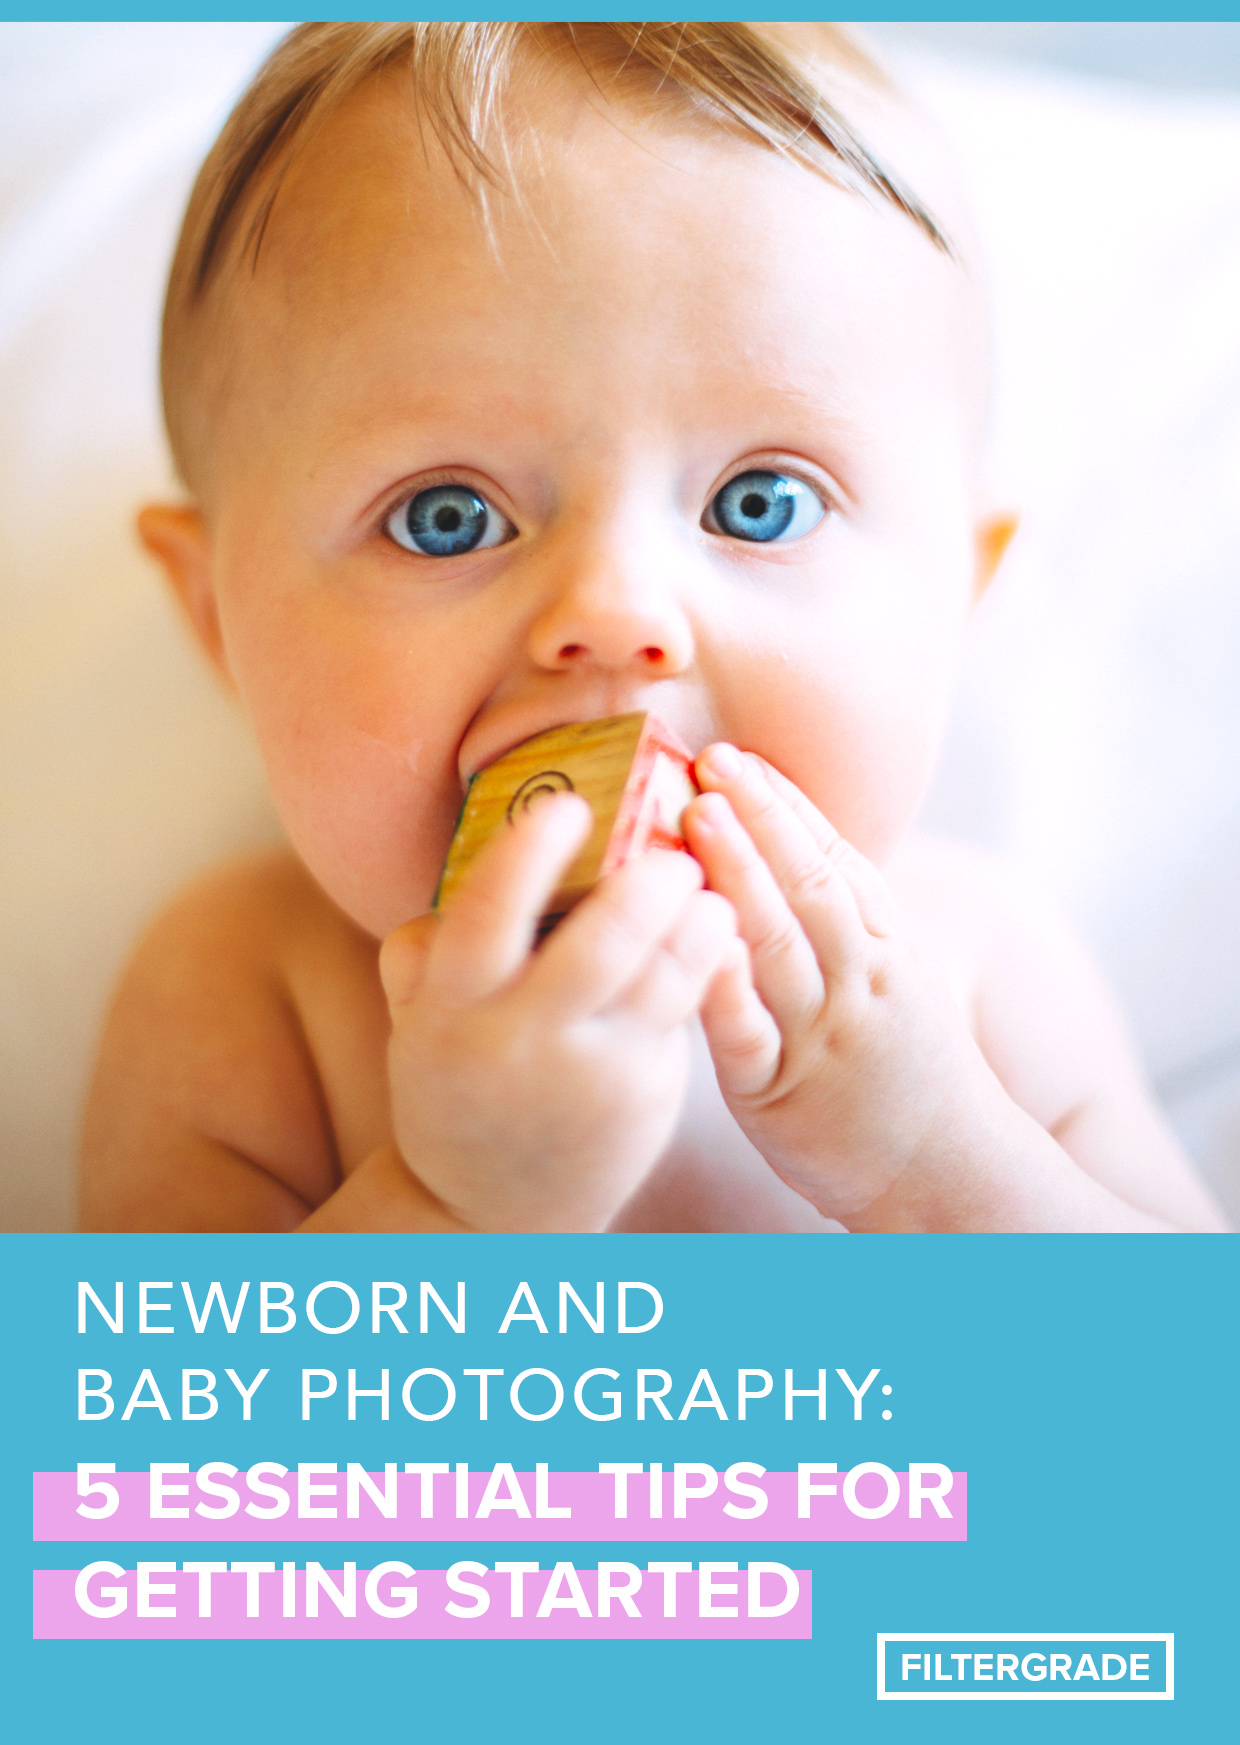 Newborn and Baby Photography: 5 Essential Tips for Getting